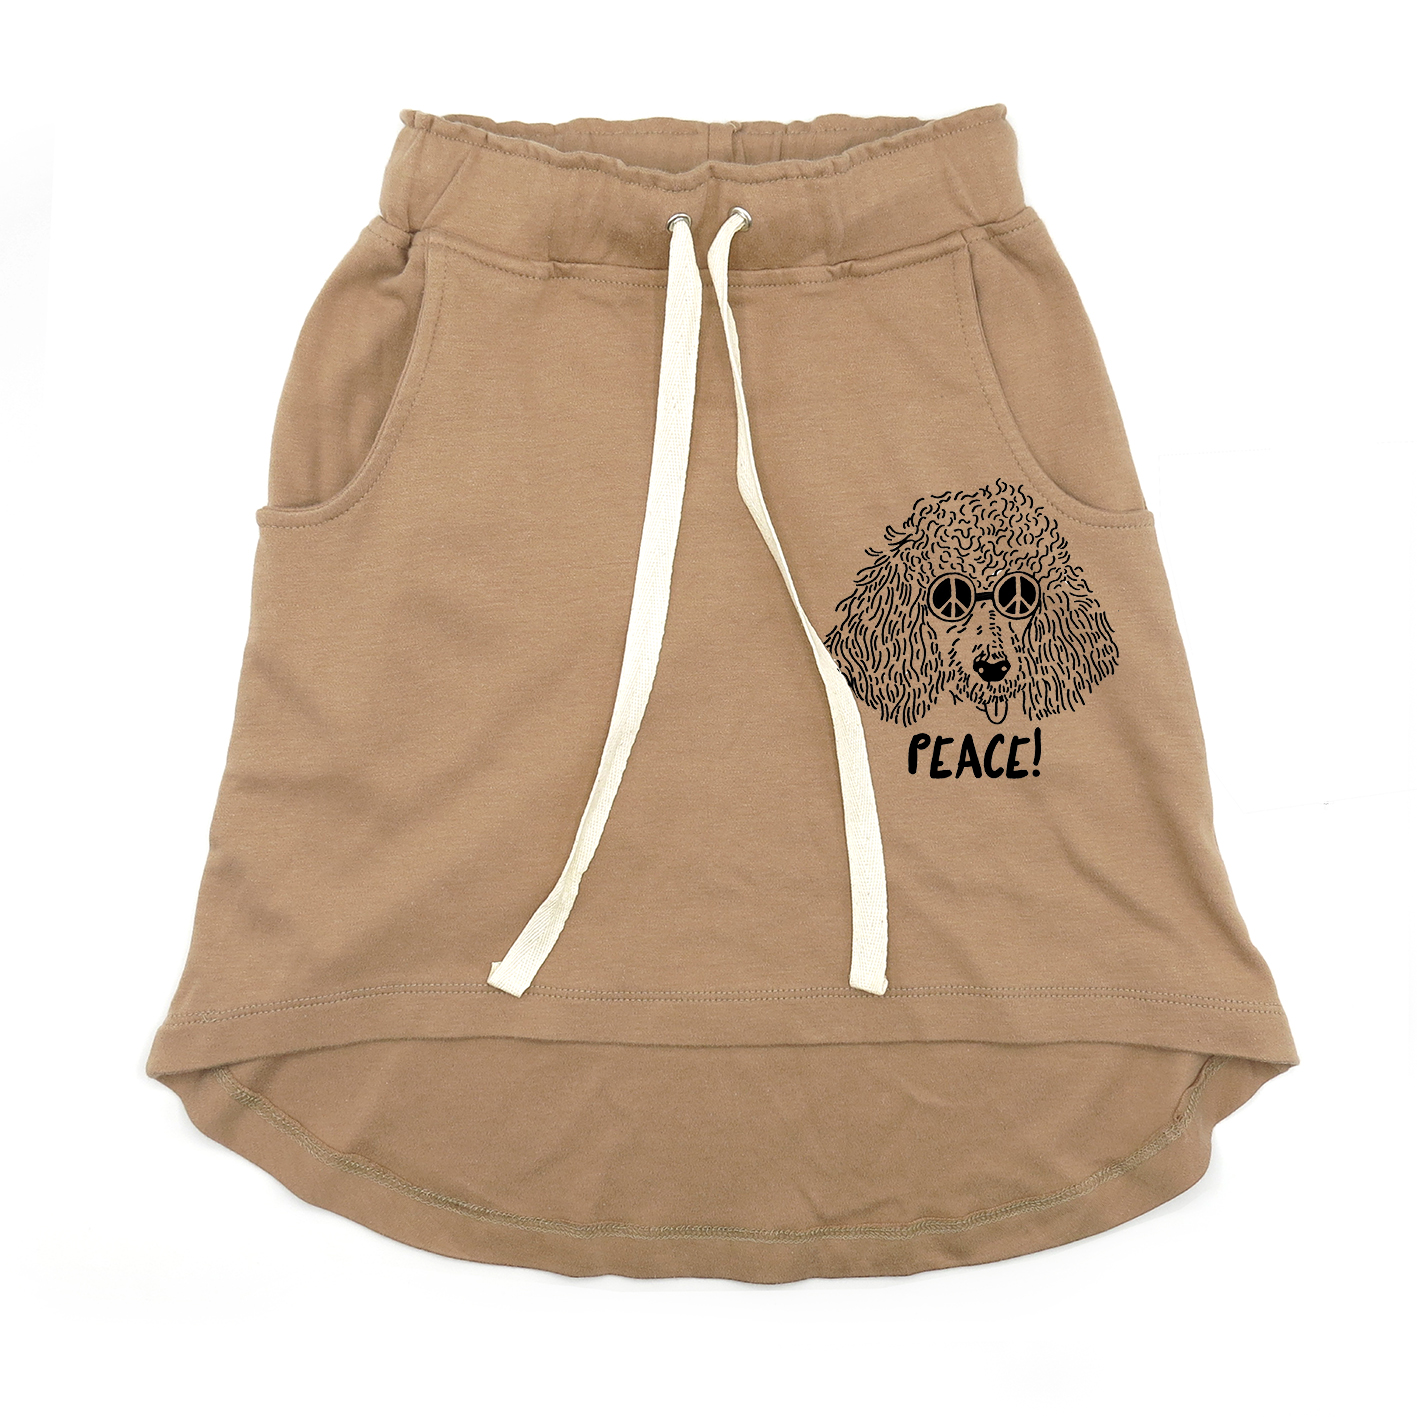 KIDS LP05177 [C] 1-7Y. PEACE KNEE SKIRT